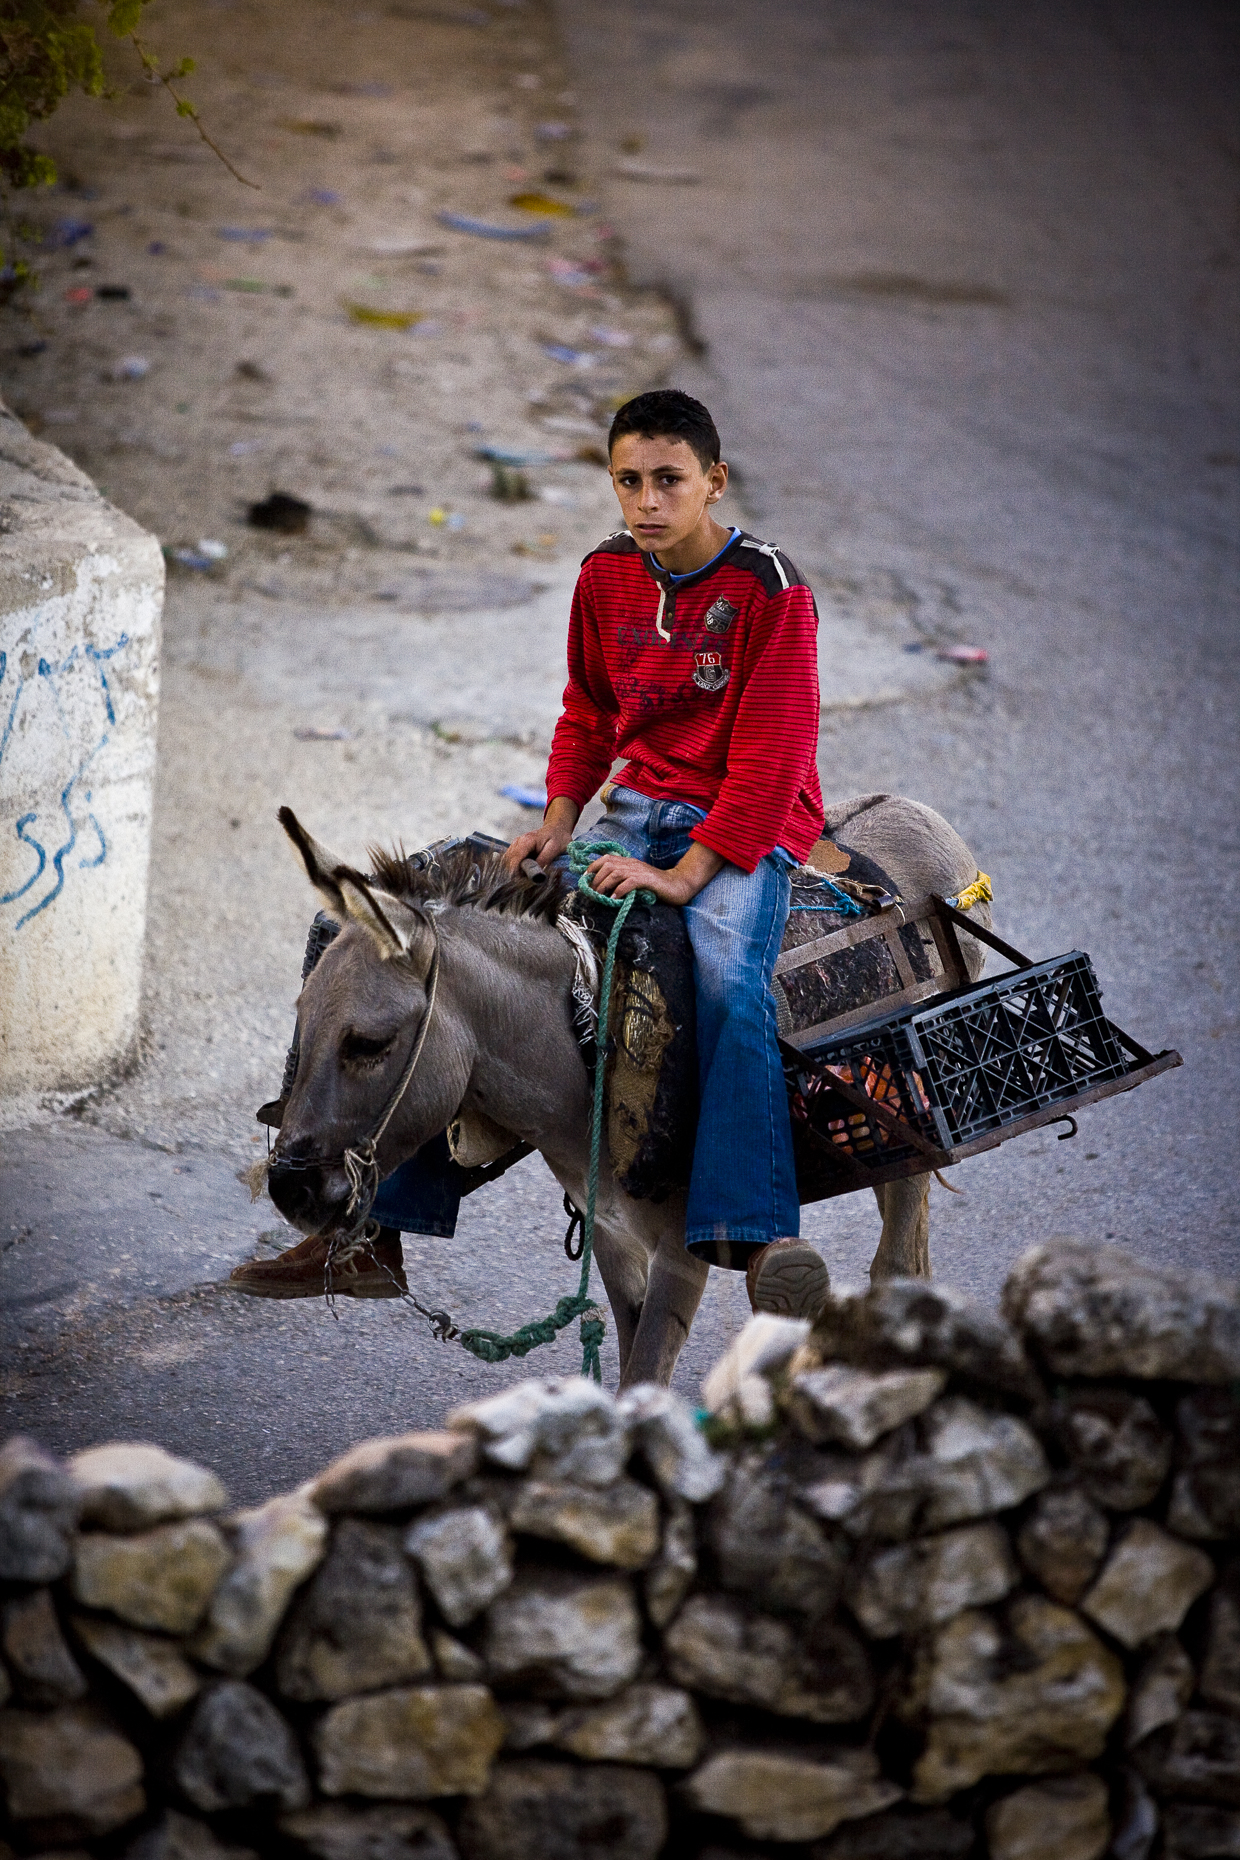 Boy on donkey, West Bank